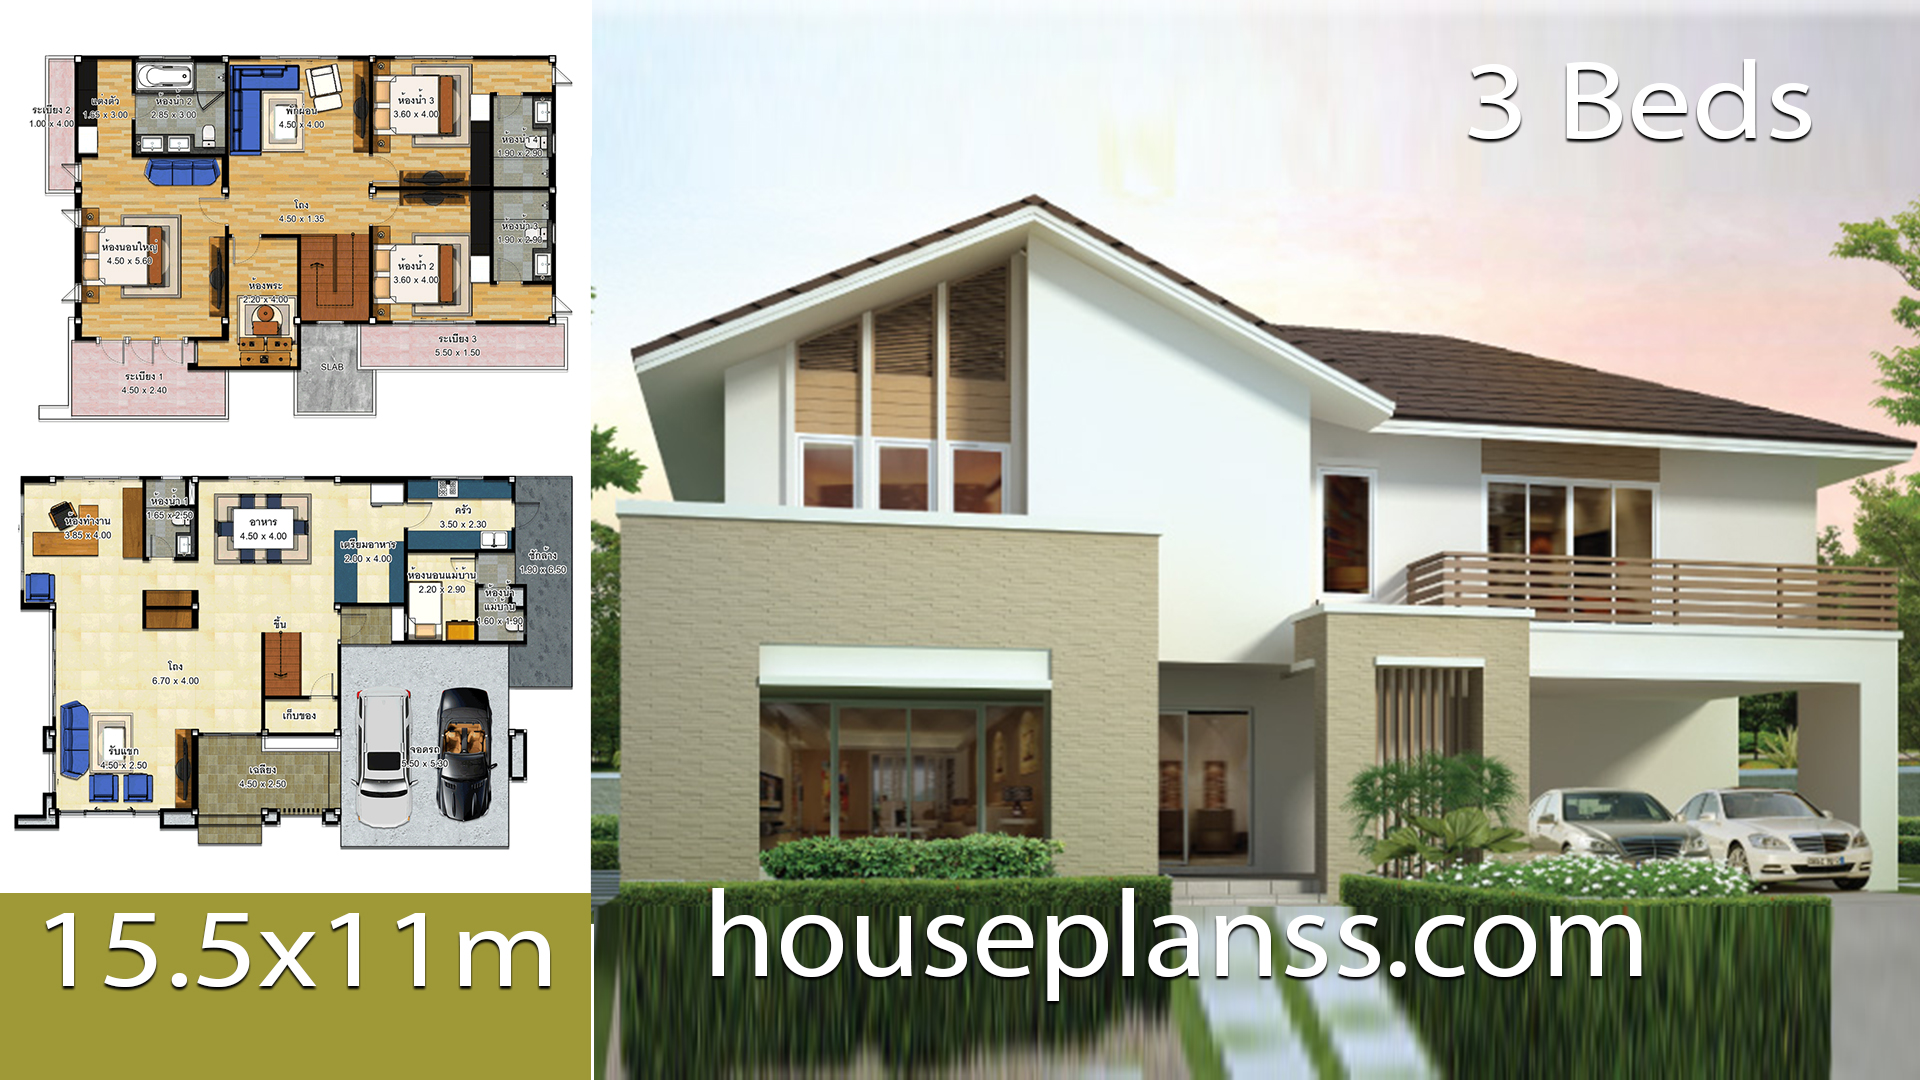 House design idea 15.5×11 with 3 bedrooms